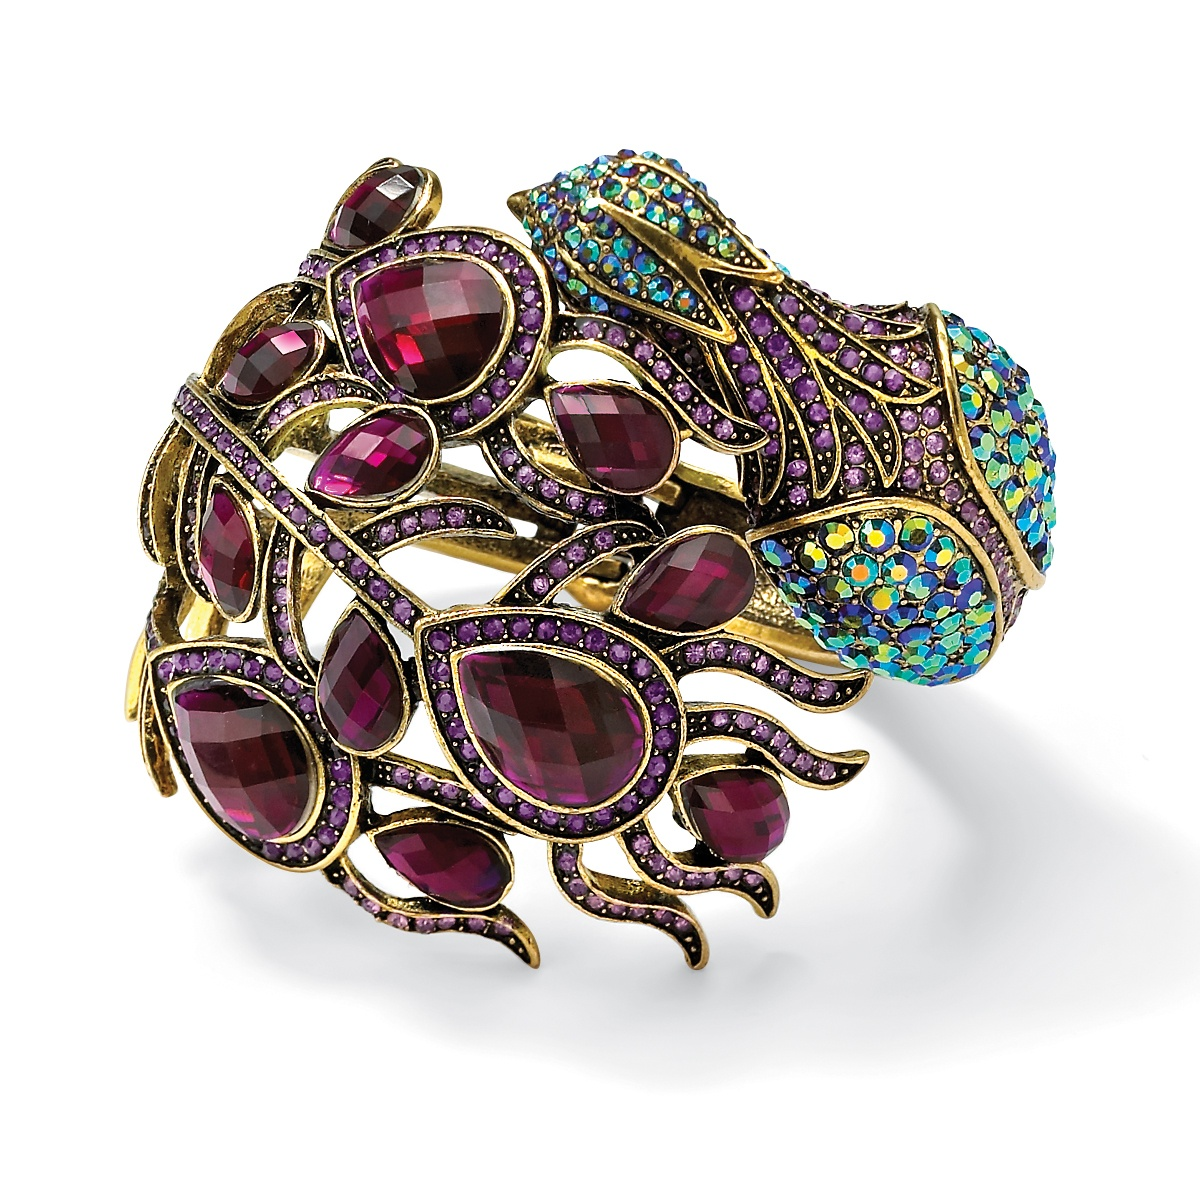 Palmbeach Jewelry Multi-color Crystal Peacock Hinged